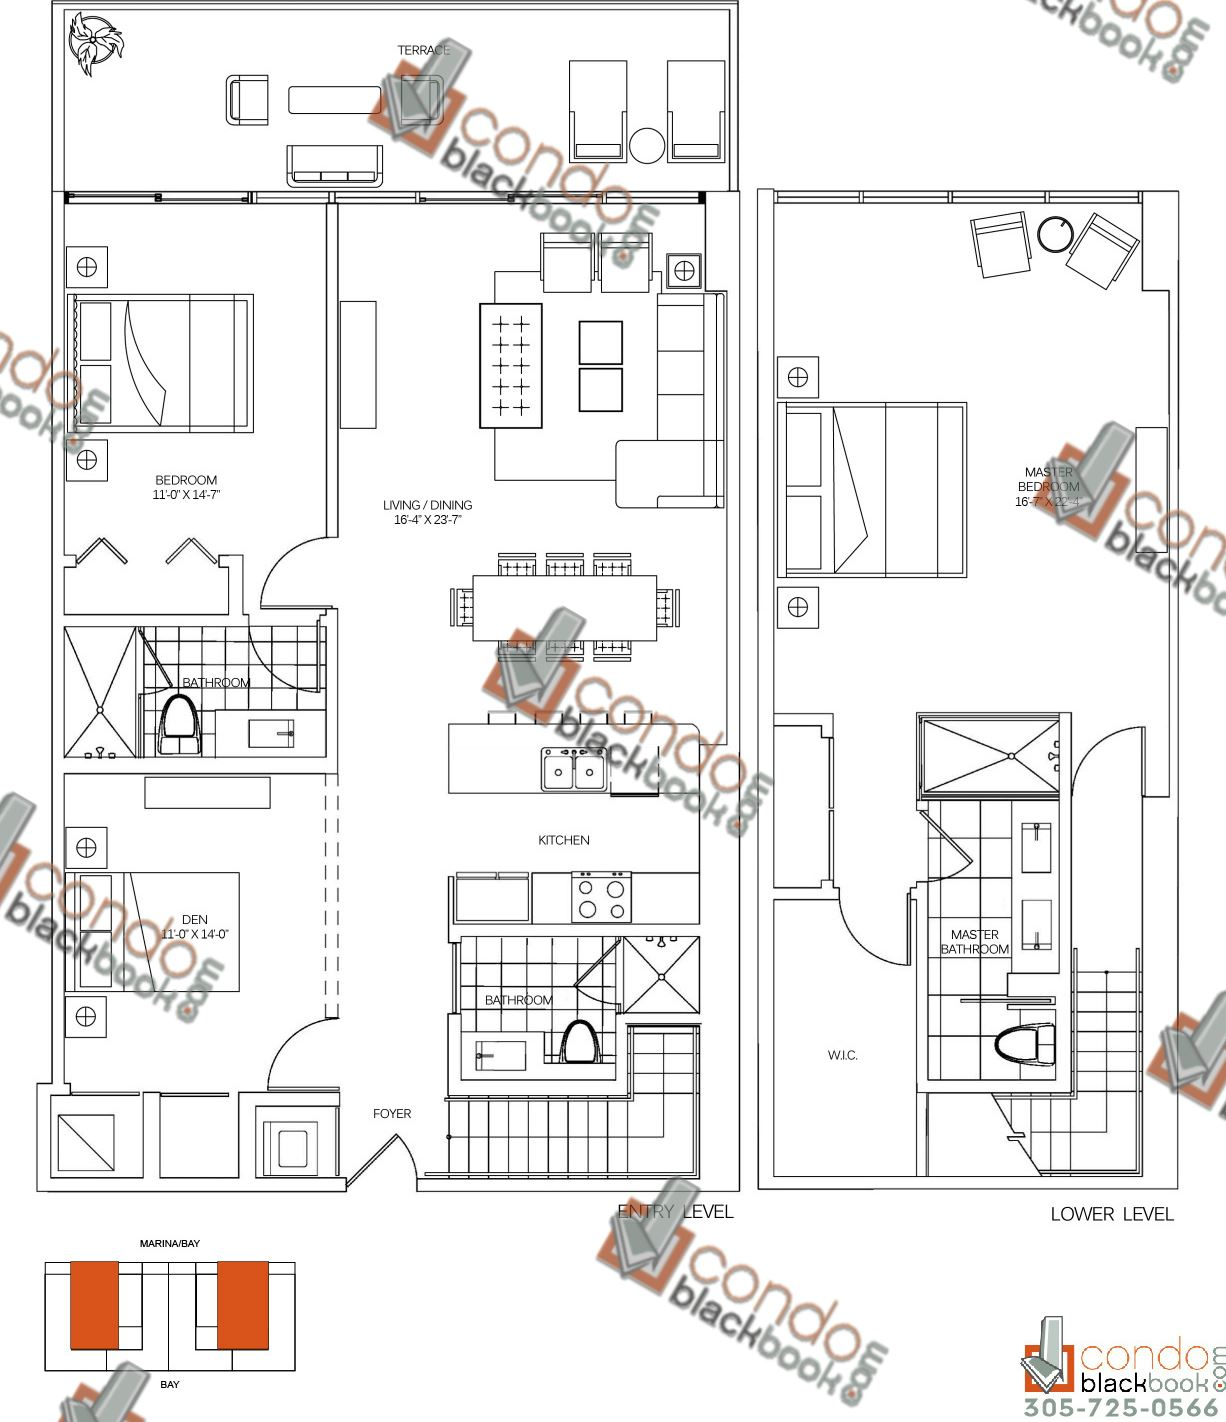 Floor plan for 400 Sunny Isles Sunny Isles Beach, model C, line 03, 2/3 bedrooms, 2,115 sq ft